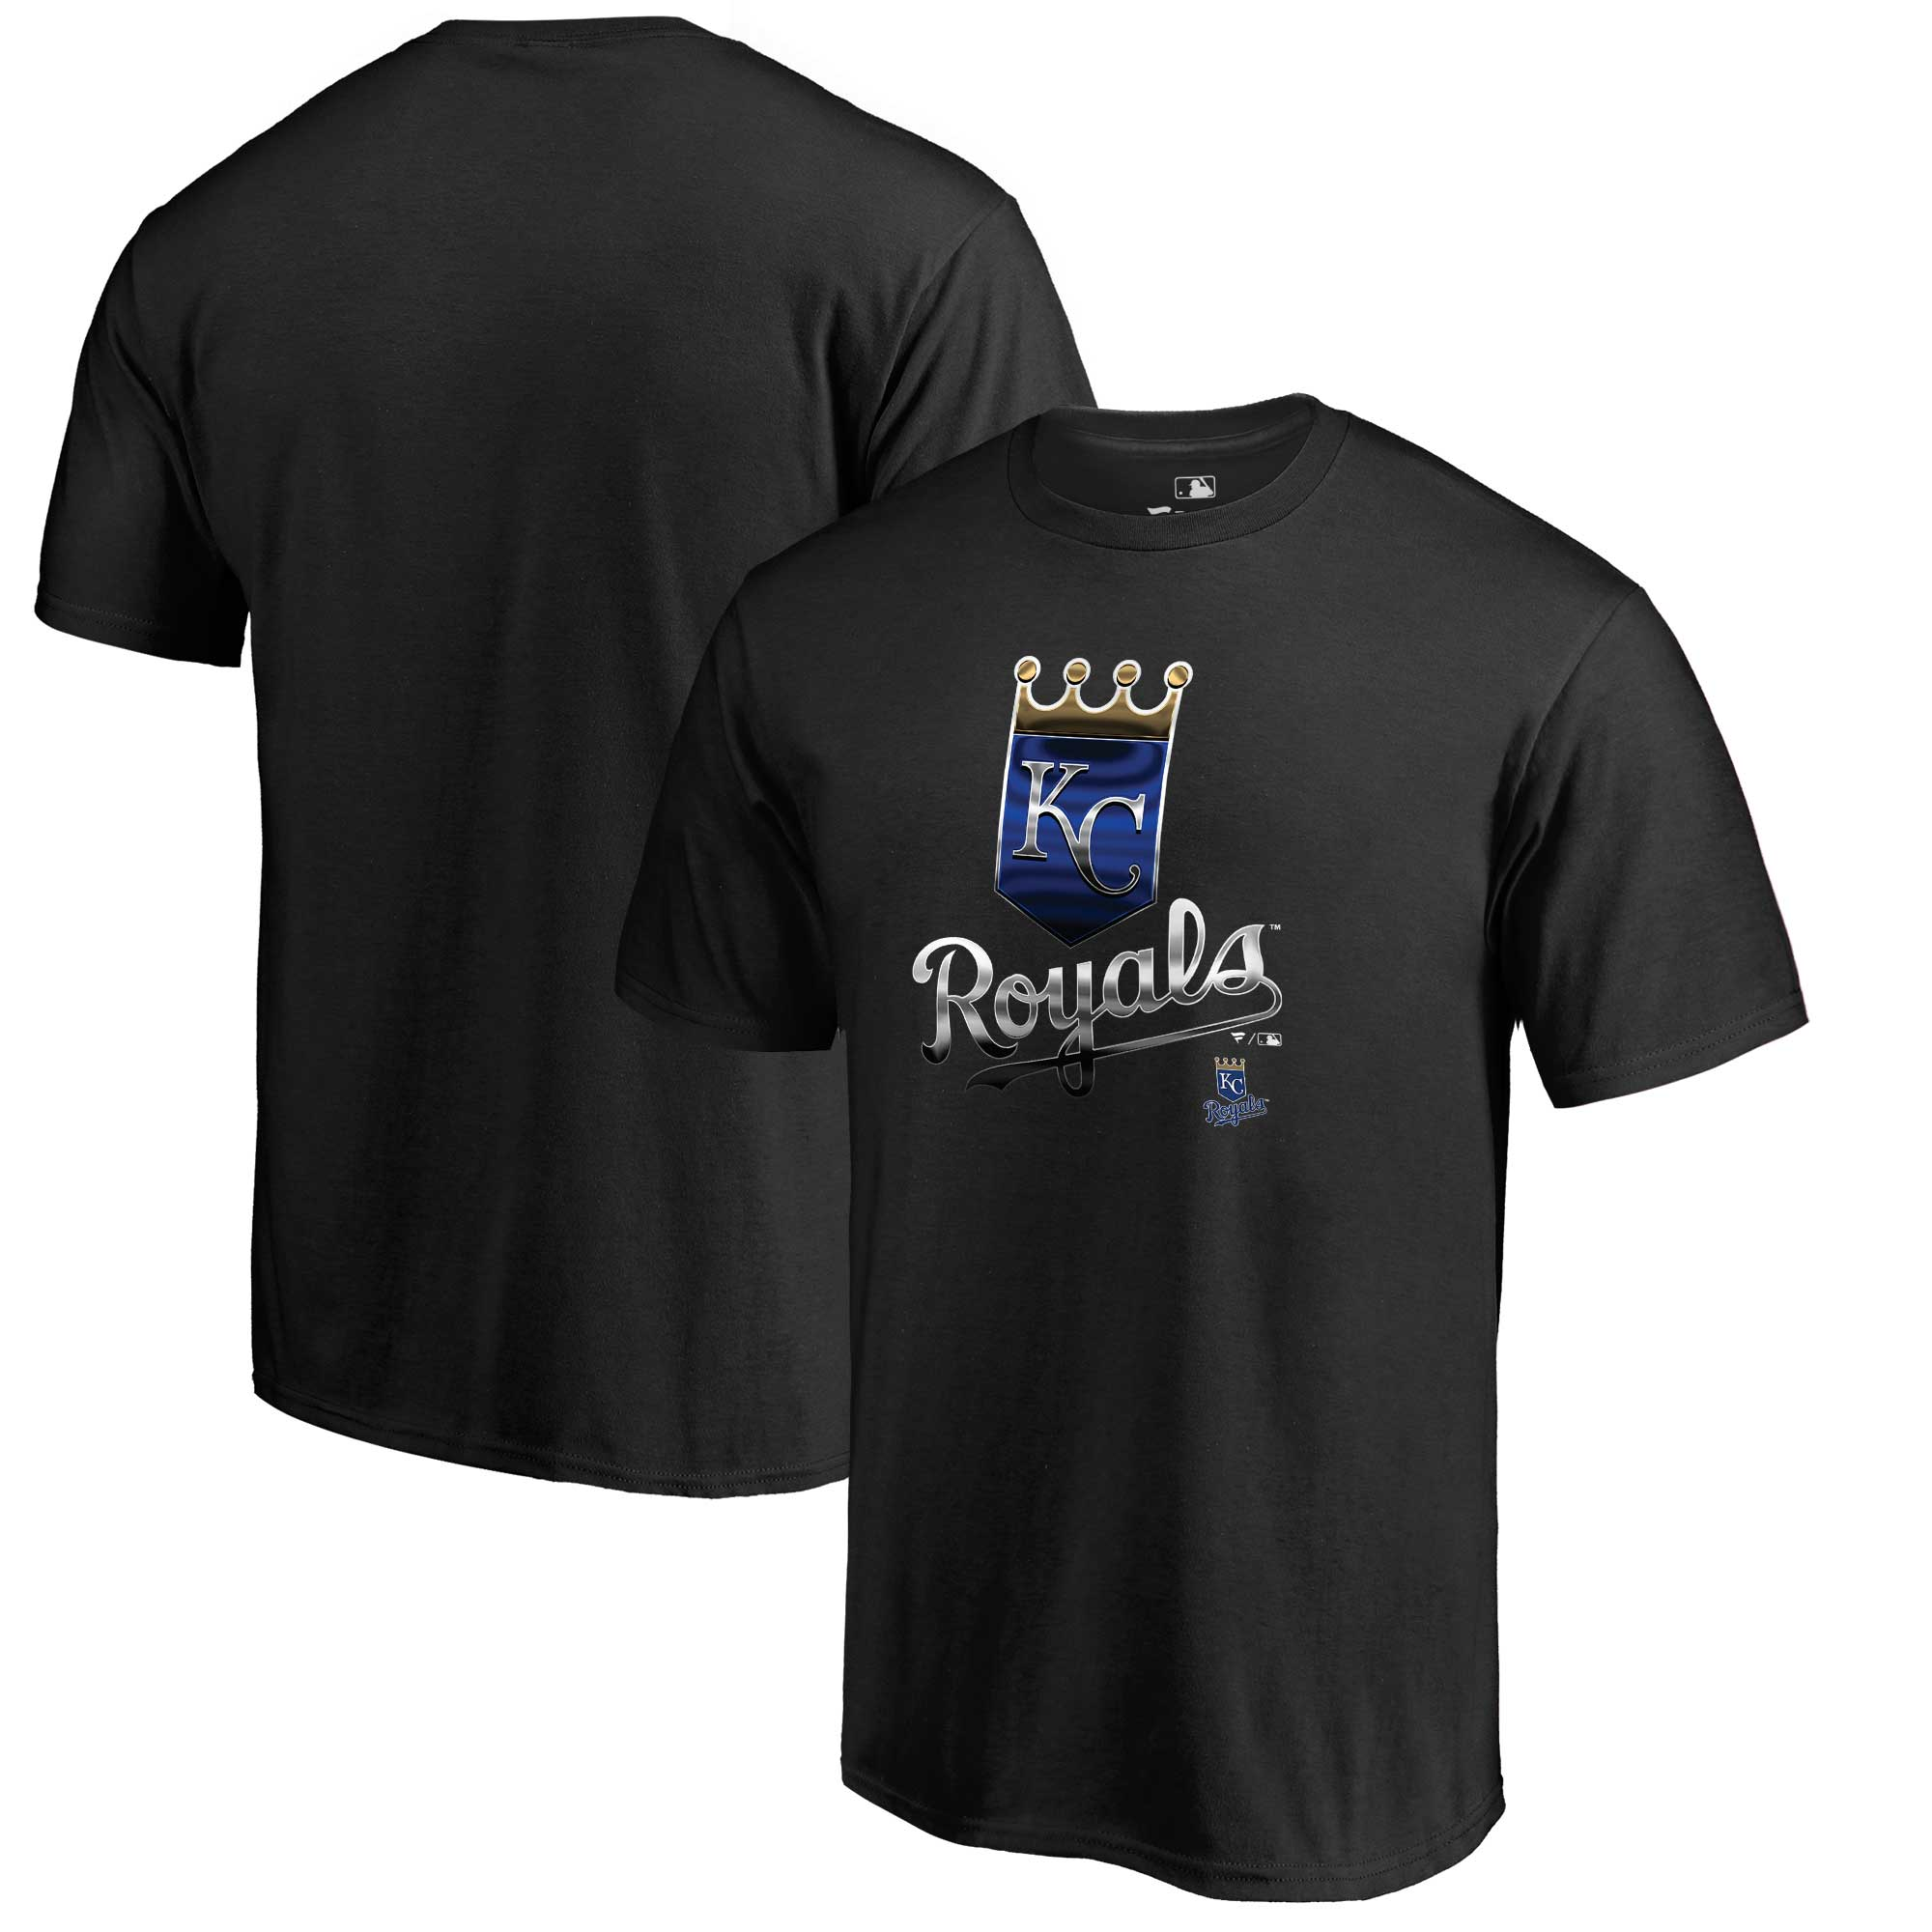 Kansas City Royals Fanatics Branded Midnight Mascot T-Shirt - Black